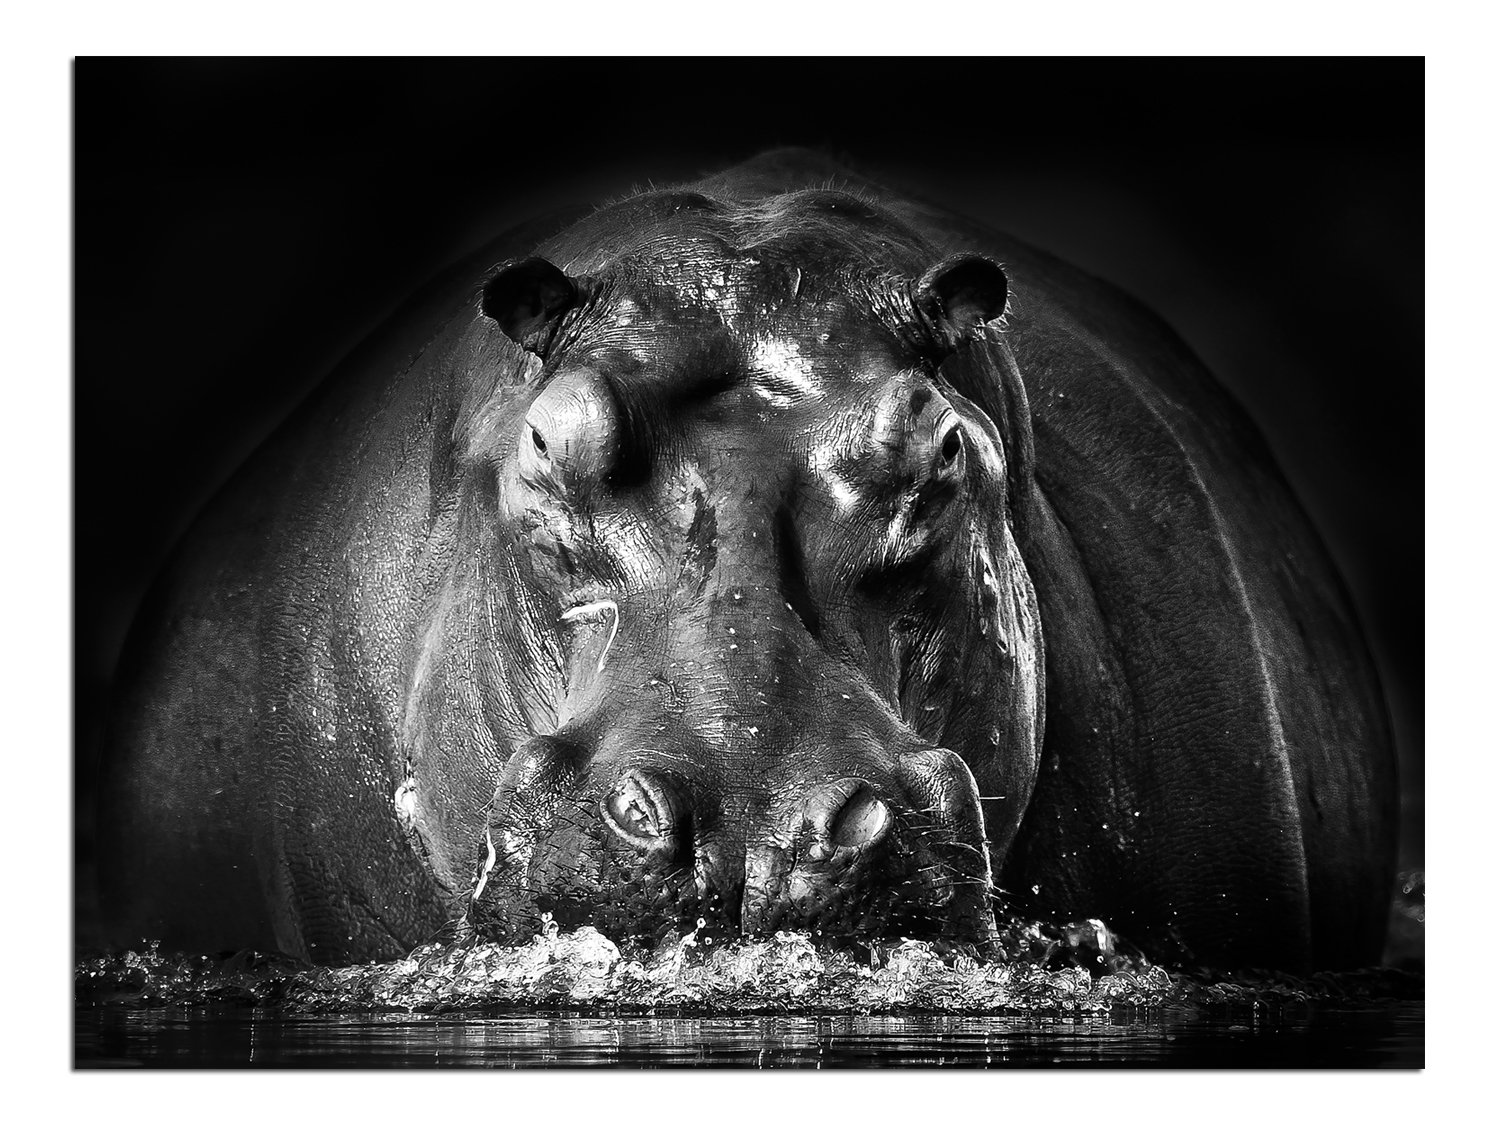 JP London Solvent Free Print PAPL1X1057589 Power Hippo Lodge Black White Animal Ready to Frame Poster Wall Art 40 h by 30 w